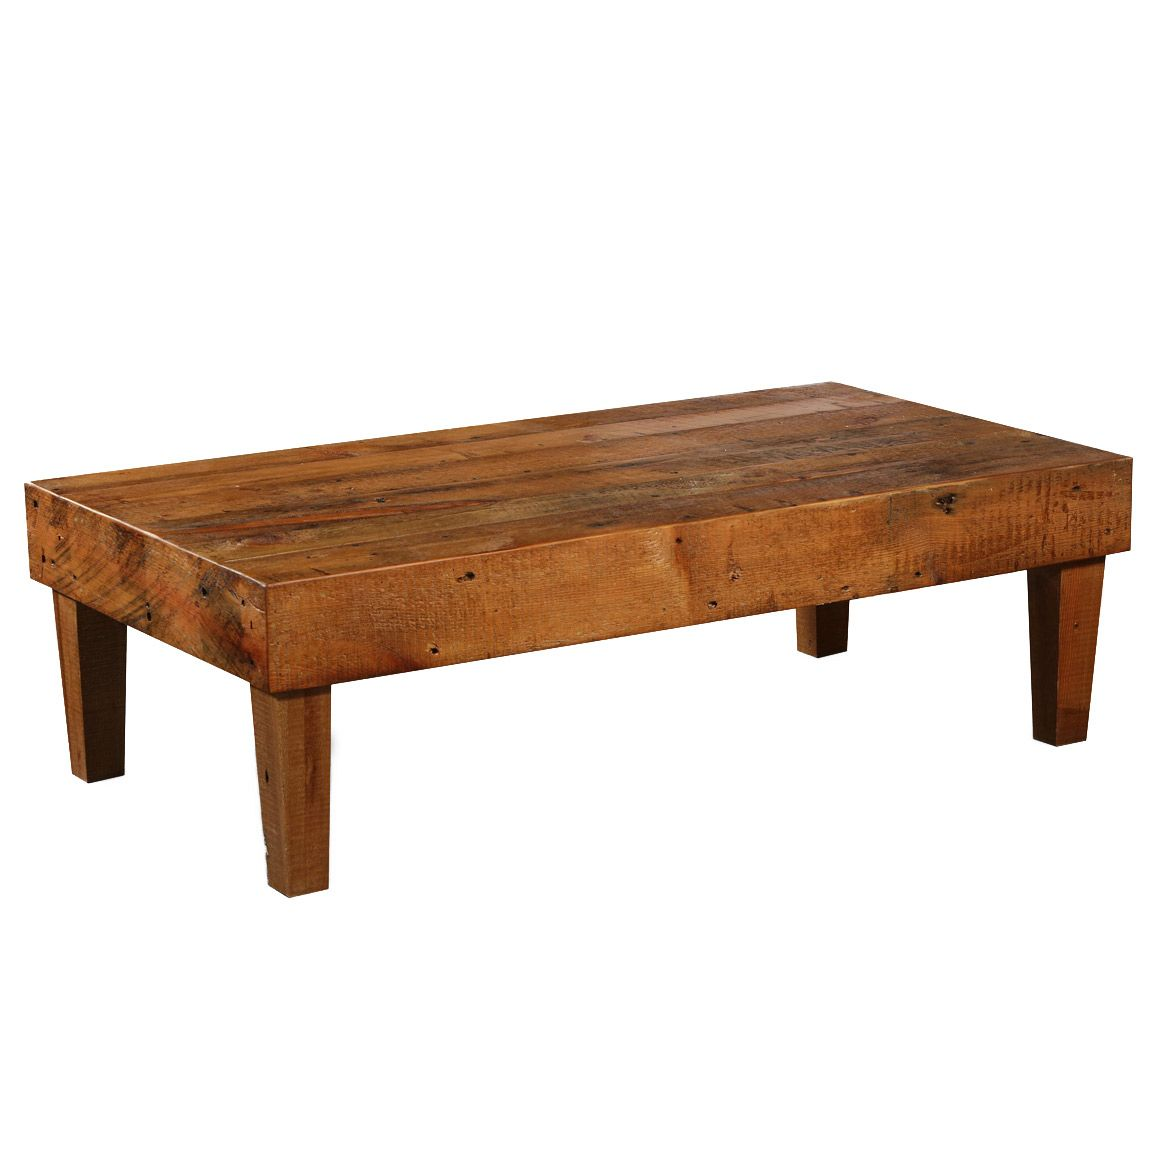 Kathryn Hexum Coffee Table